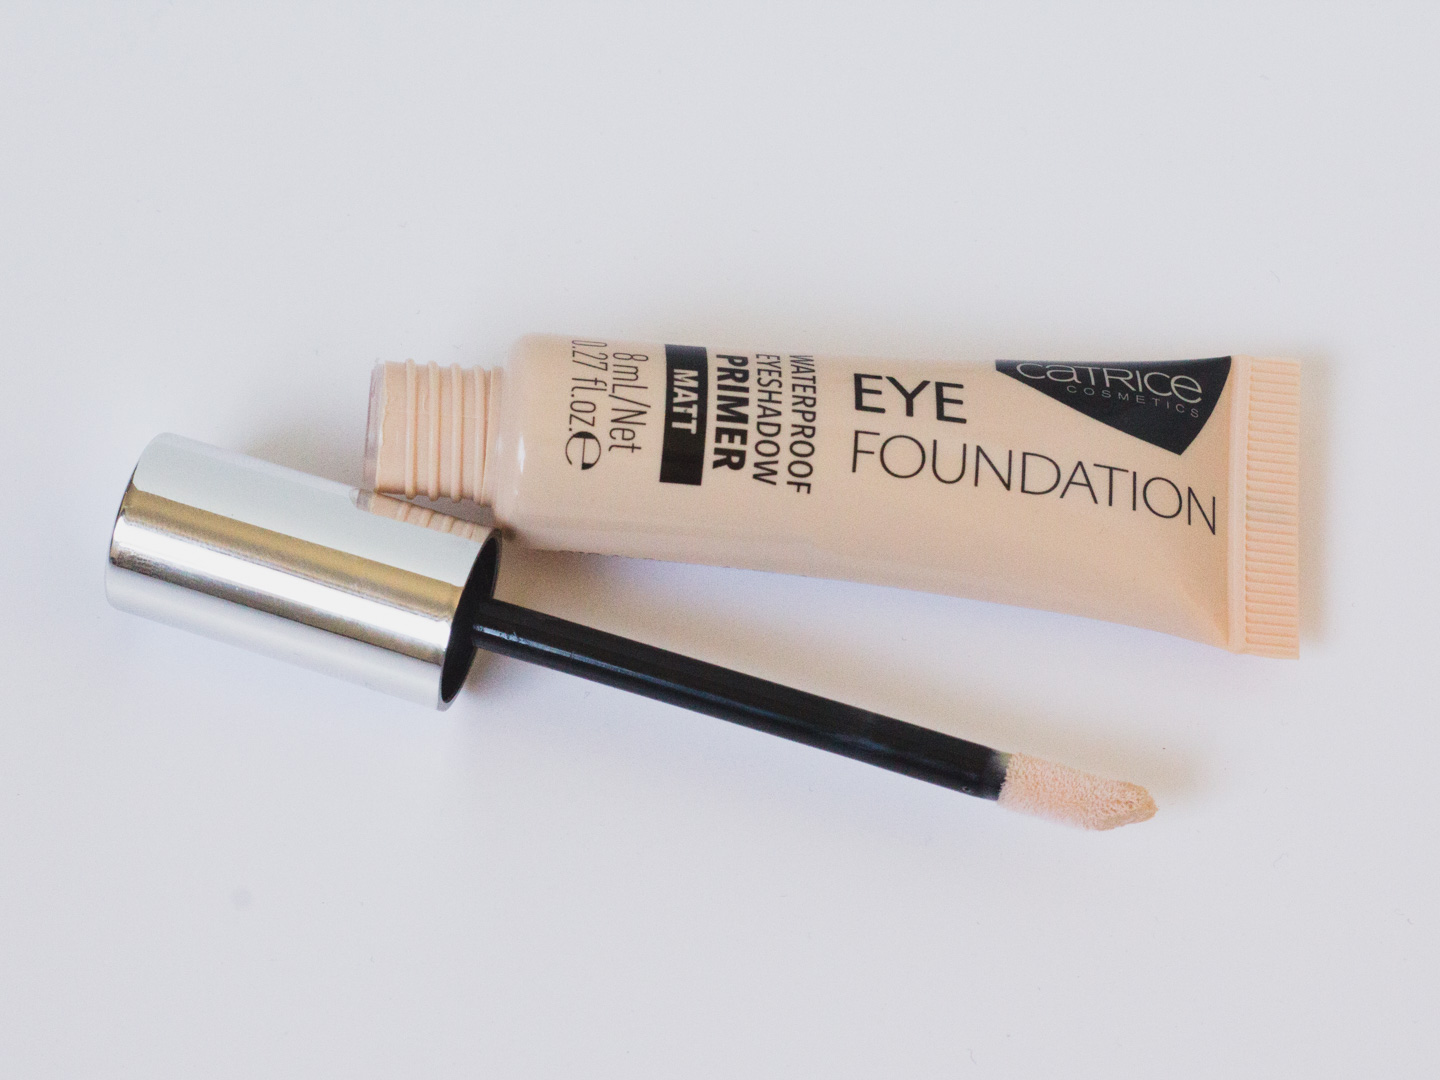 Catrice Eye Foundation applicator